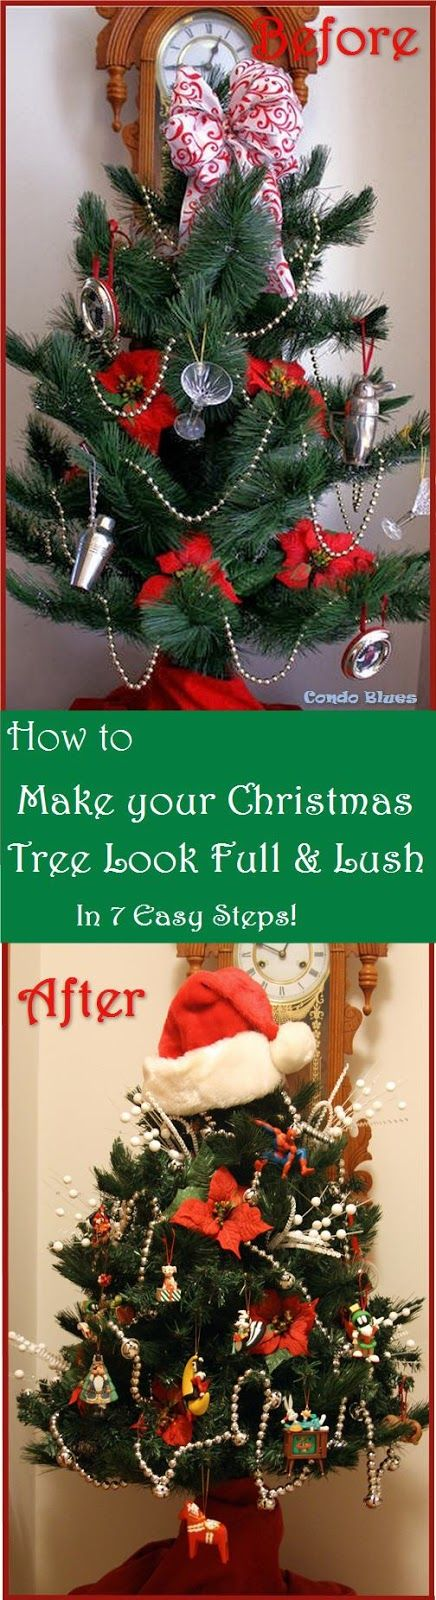 Best images about christmas tree crafts on pinterest